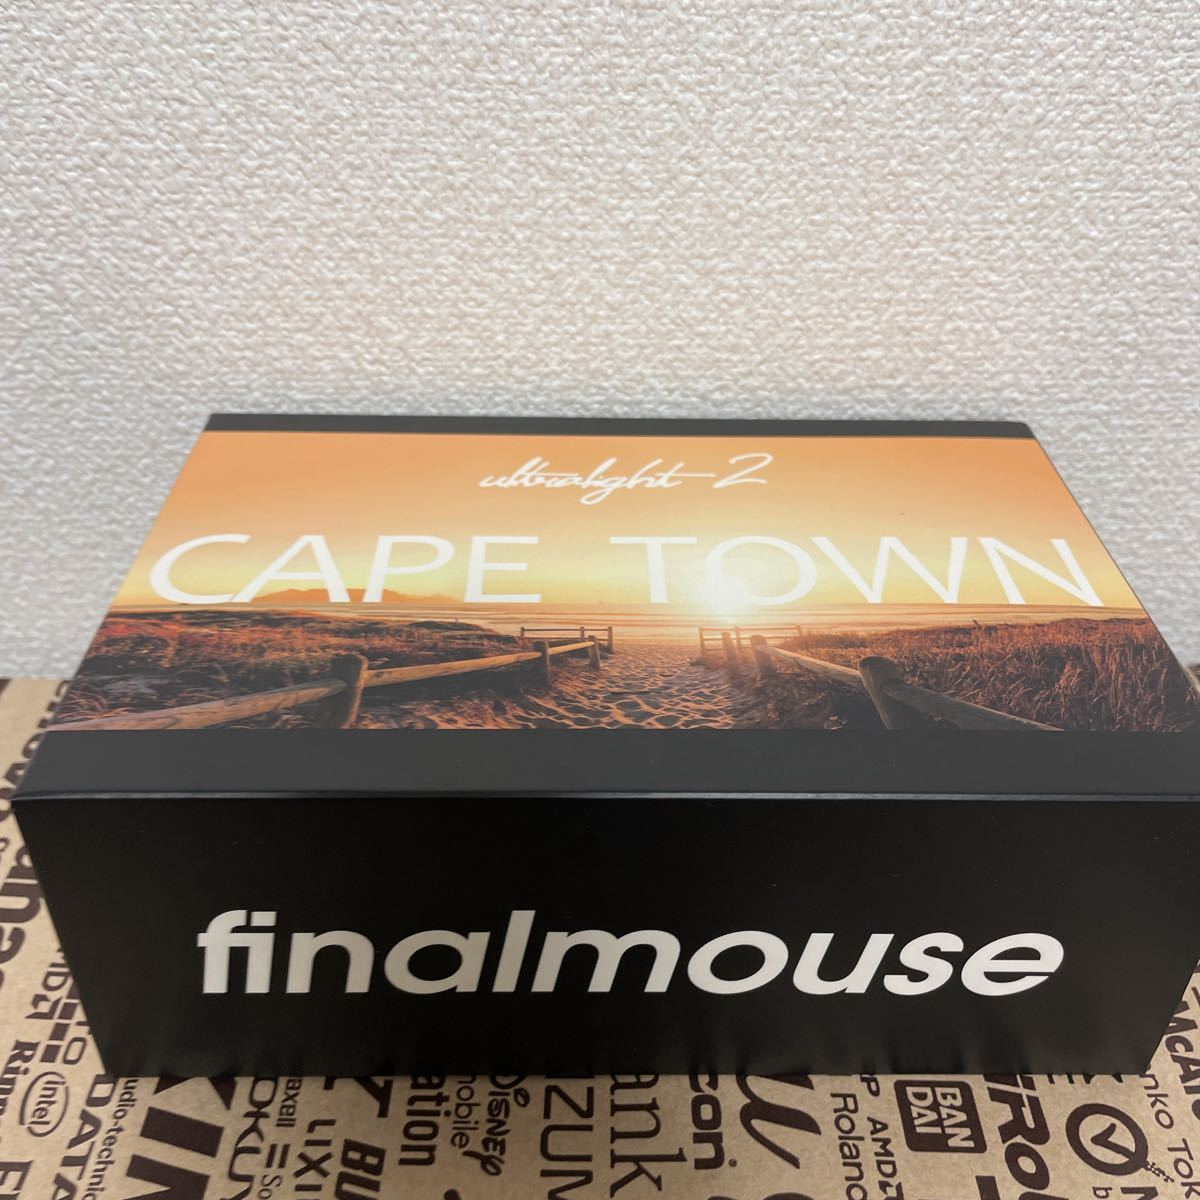 Finalmouse Ultralight 2 - CAPE TOWN_画像4